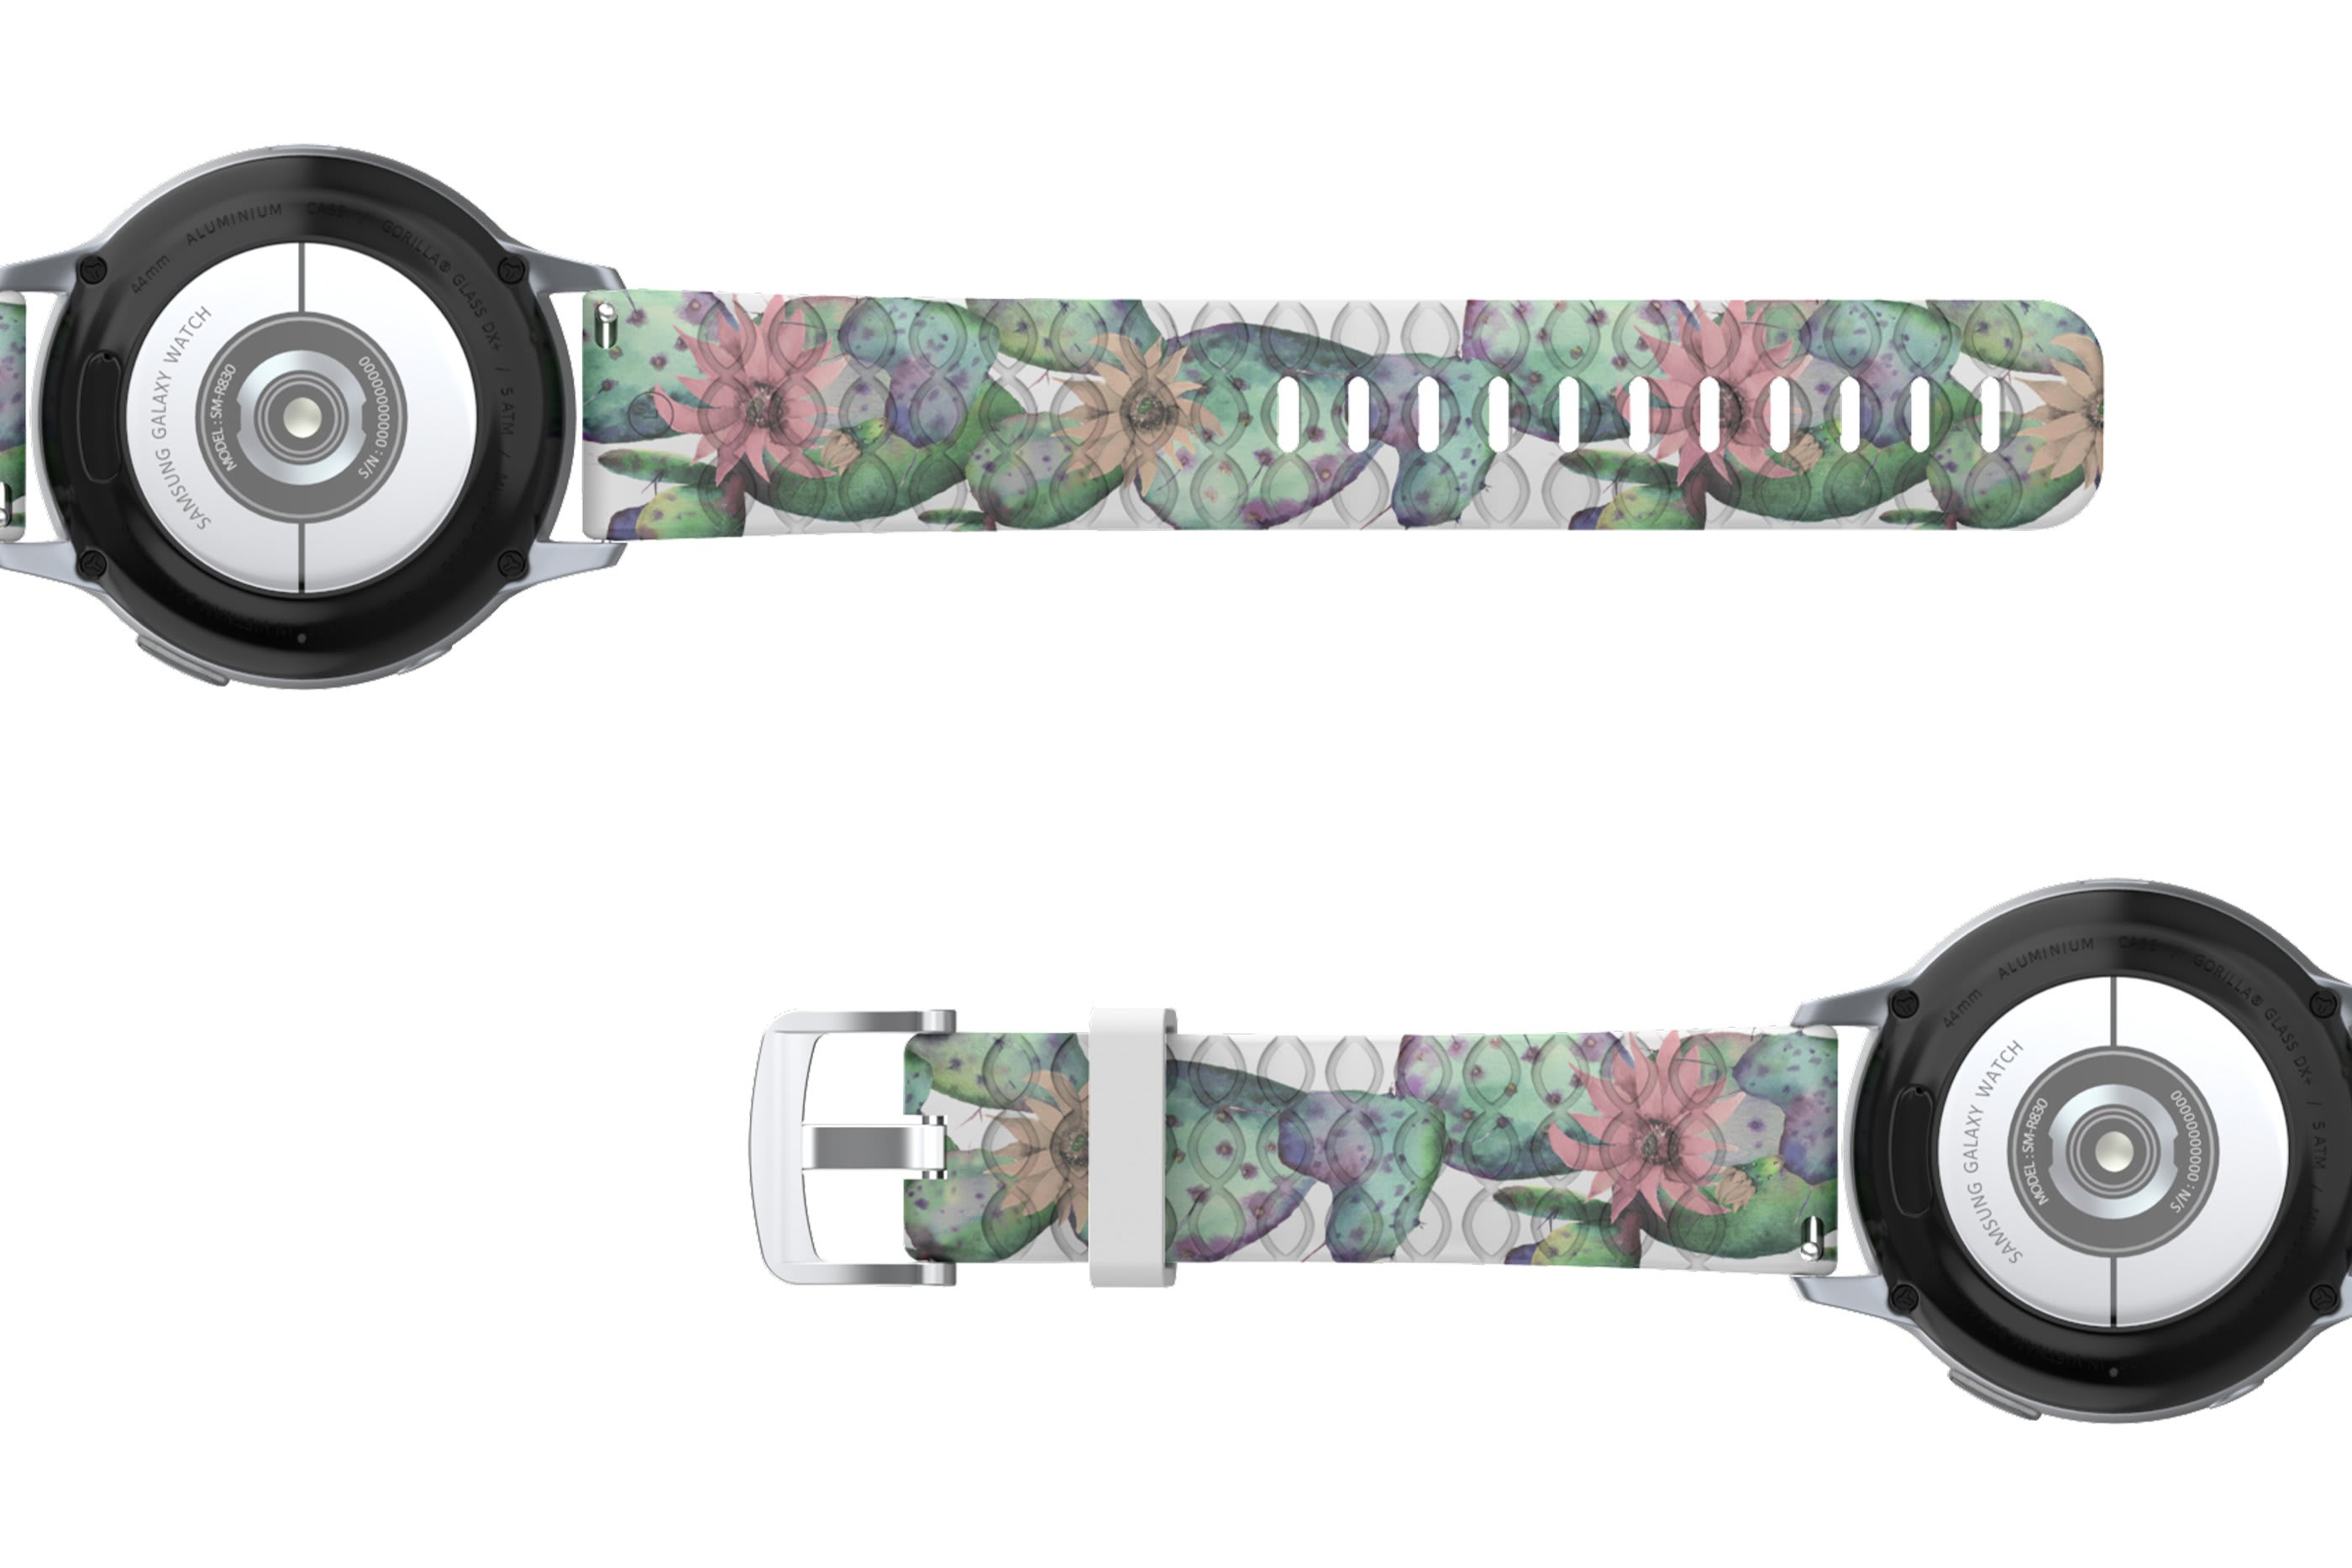 Cactus Bloom Samsung 22mm   watch band viewed bottom up